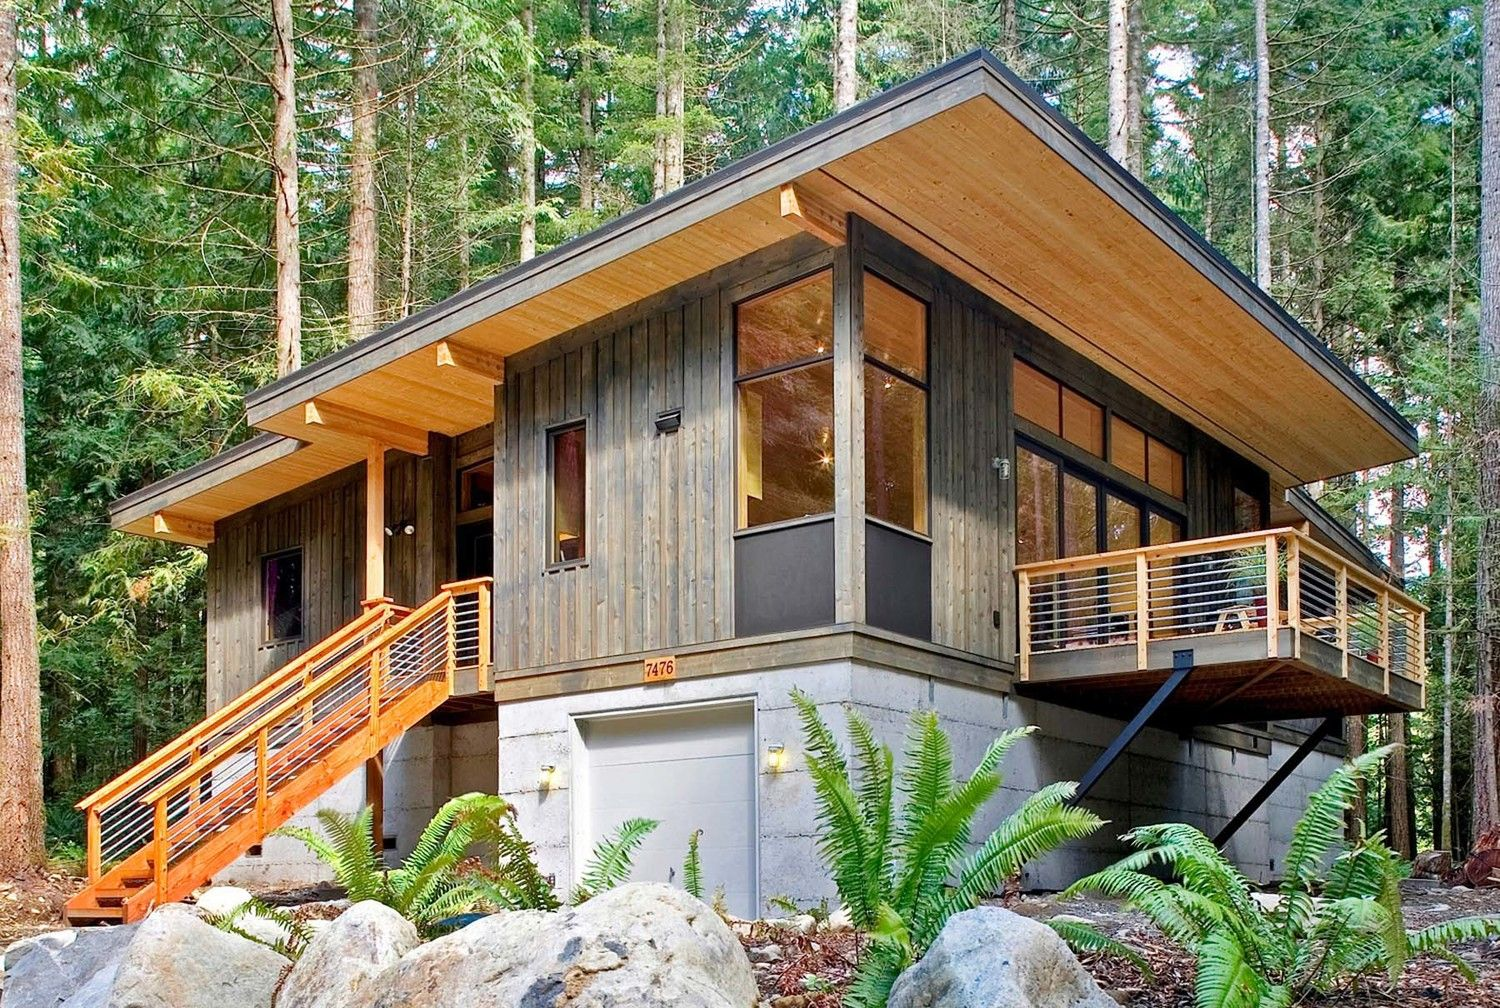 20 of the most beautiful prefab cabin designs modular for Small modular cabins and cottages